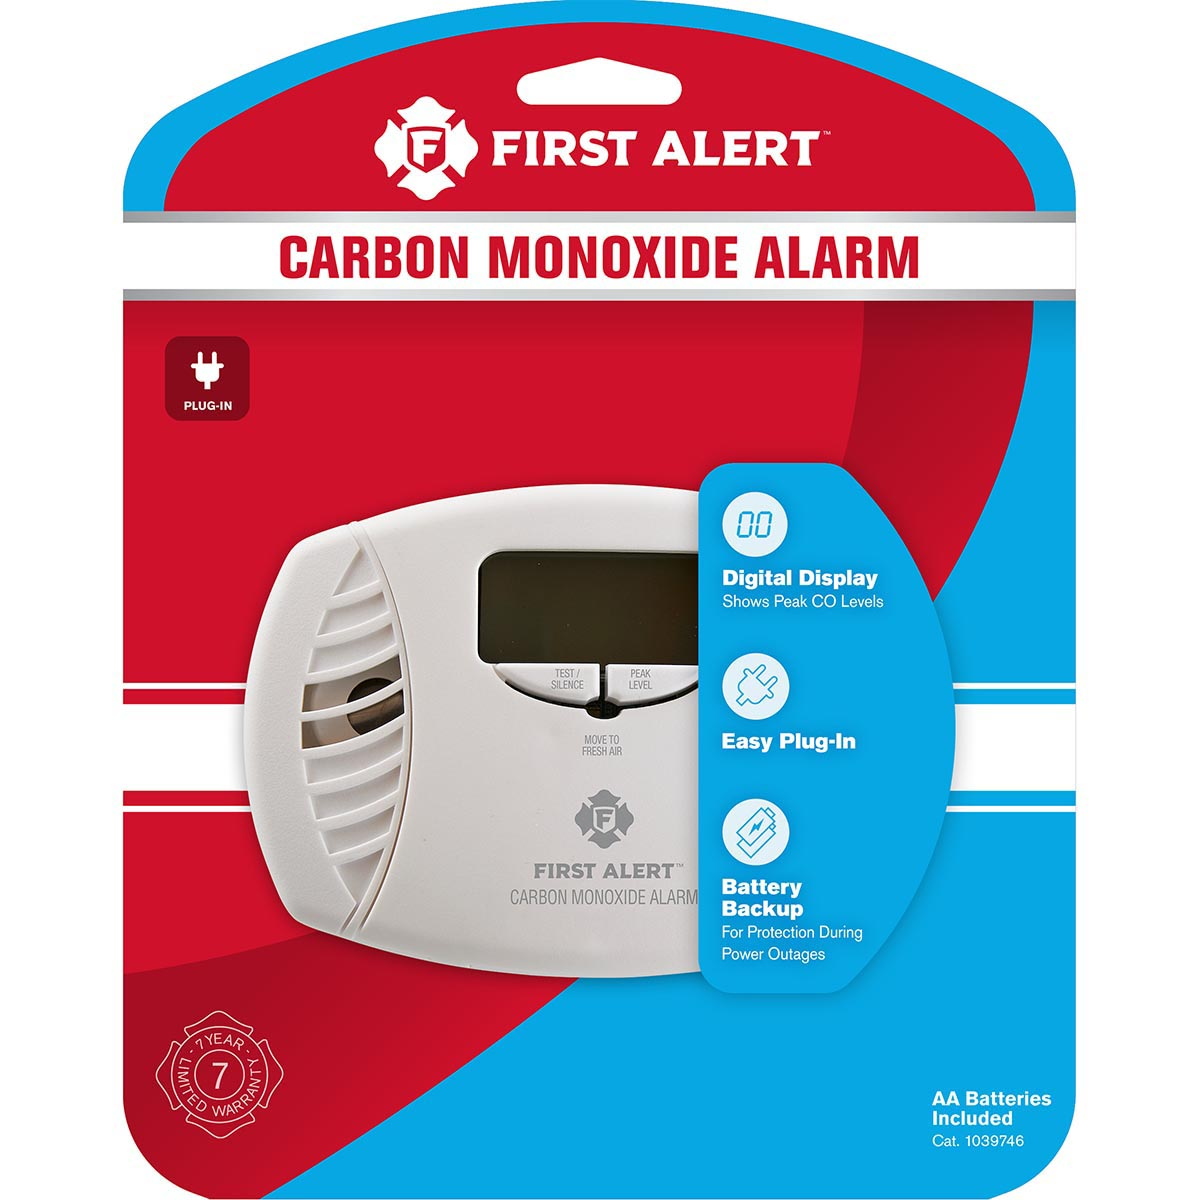 First Alert Plug-In Carbon Monoxide Alarm with Battery Backup & Backlit Digital Display - CO615 (1039746)